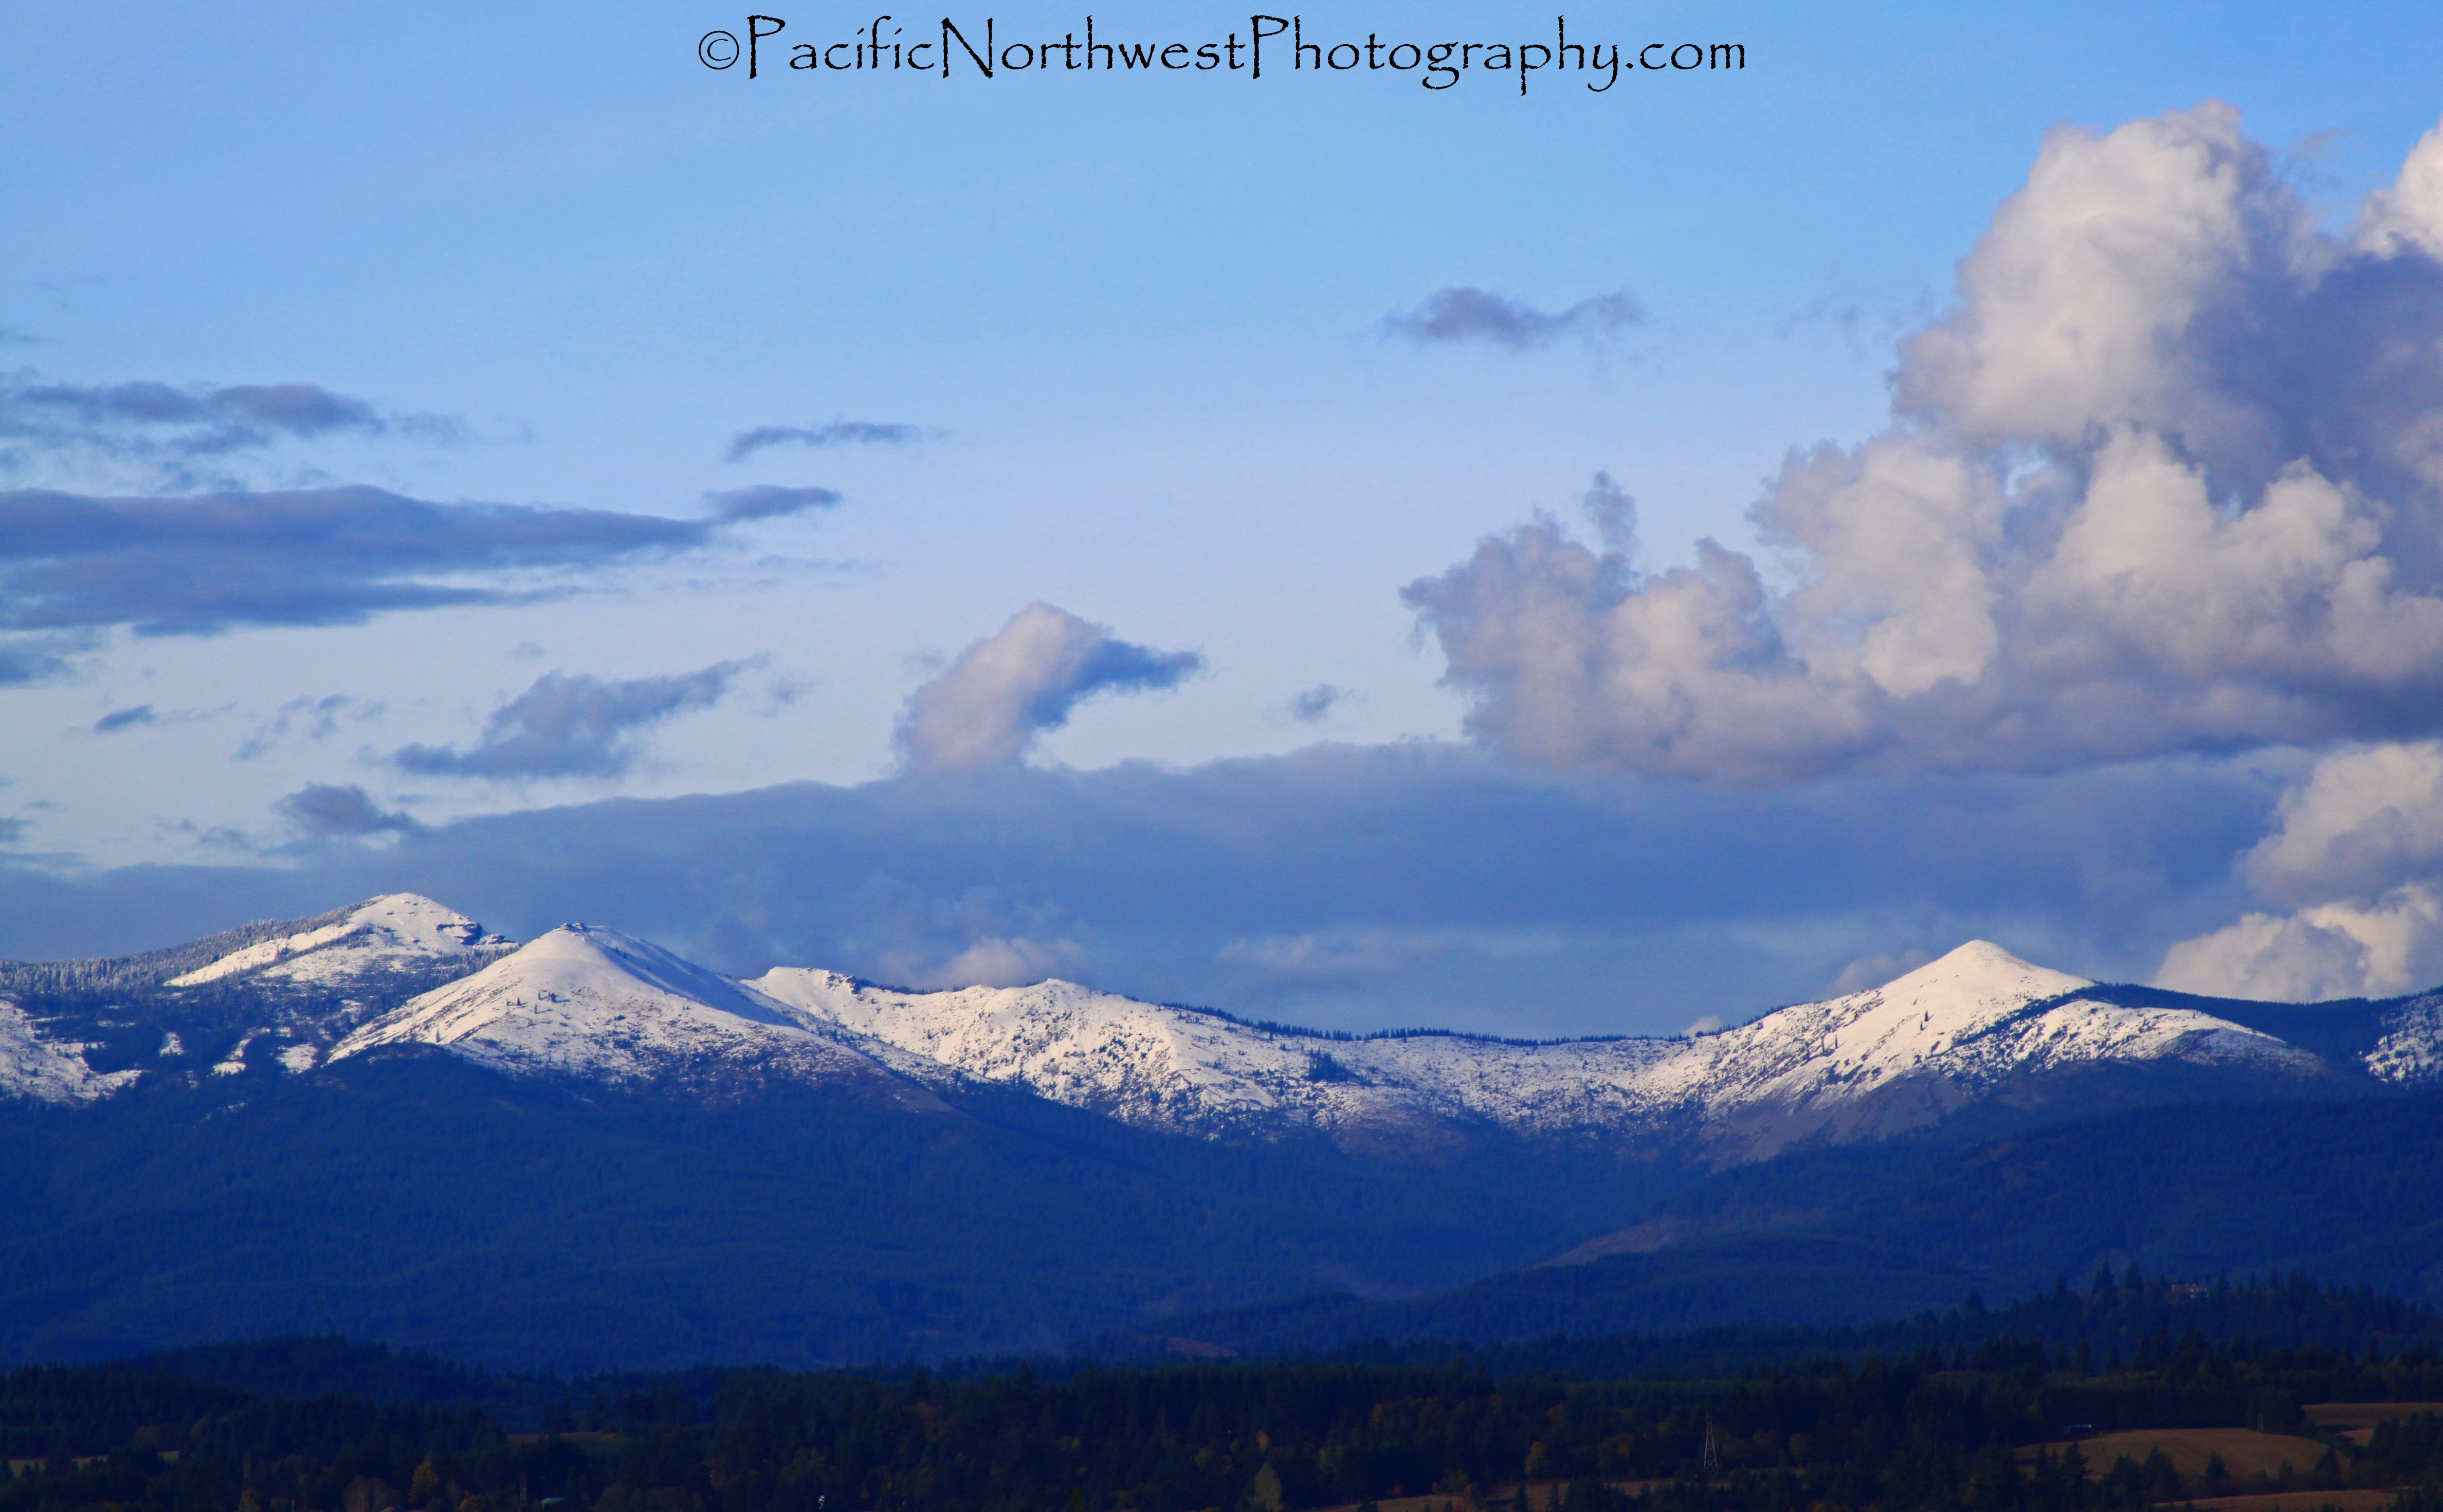 Snow in the foothills of Washington State